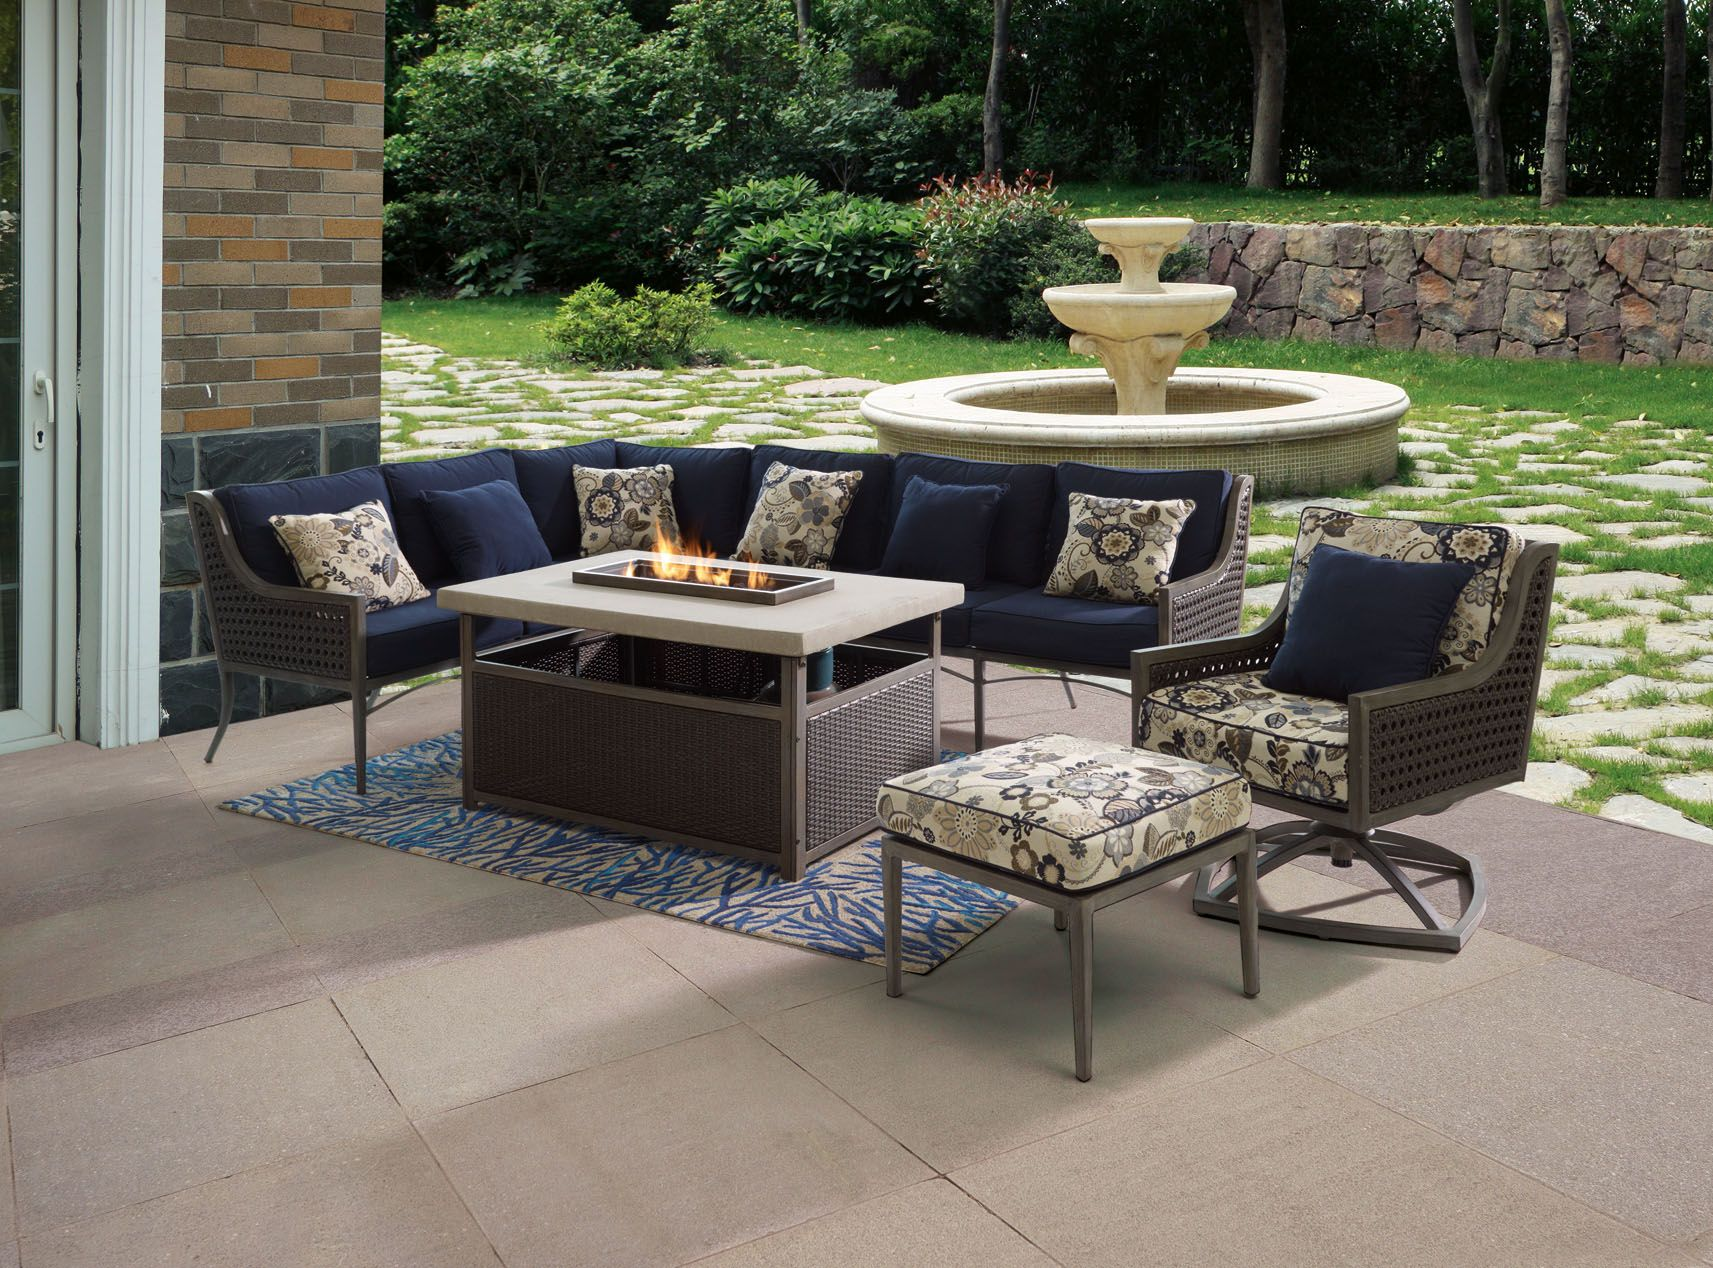 Patiologic | Outdoor furniture sets, Outdoor decor ... on Fine Living Patio Set id=44815